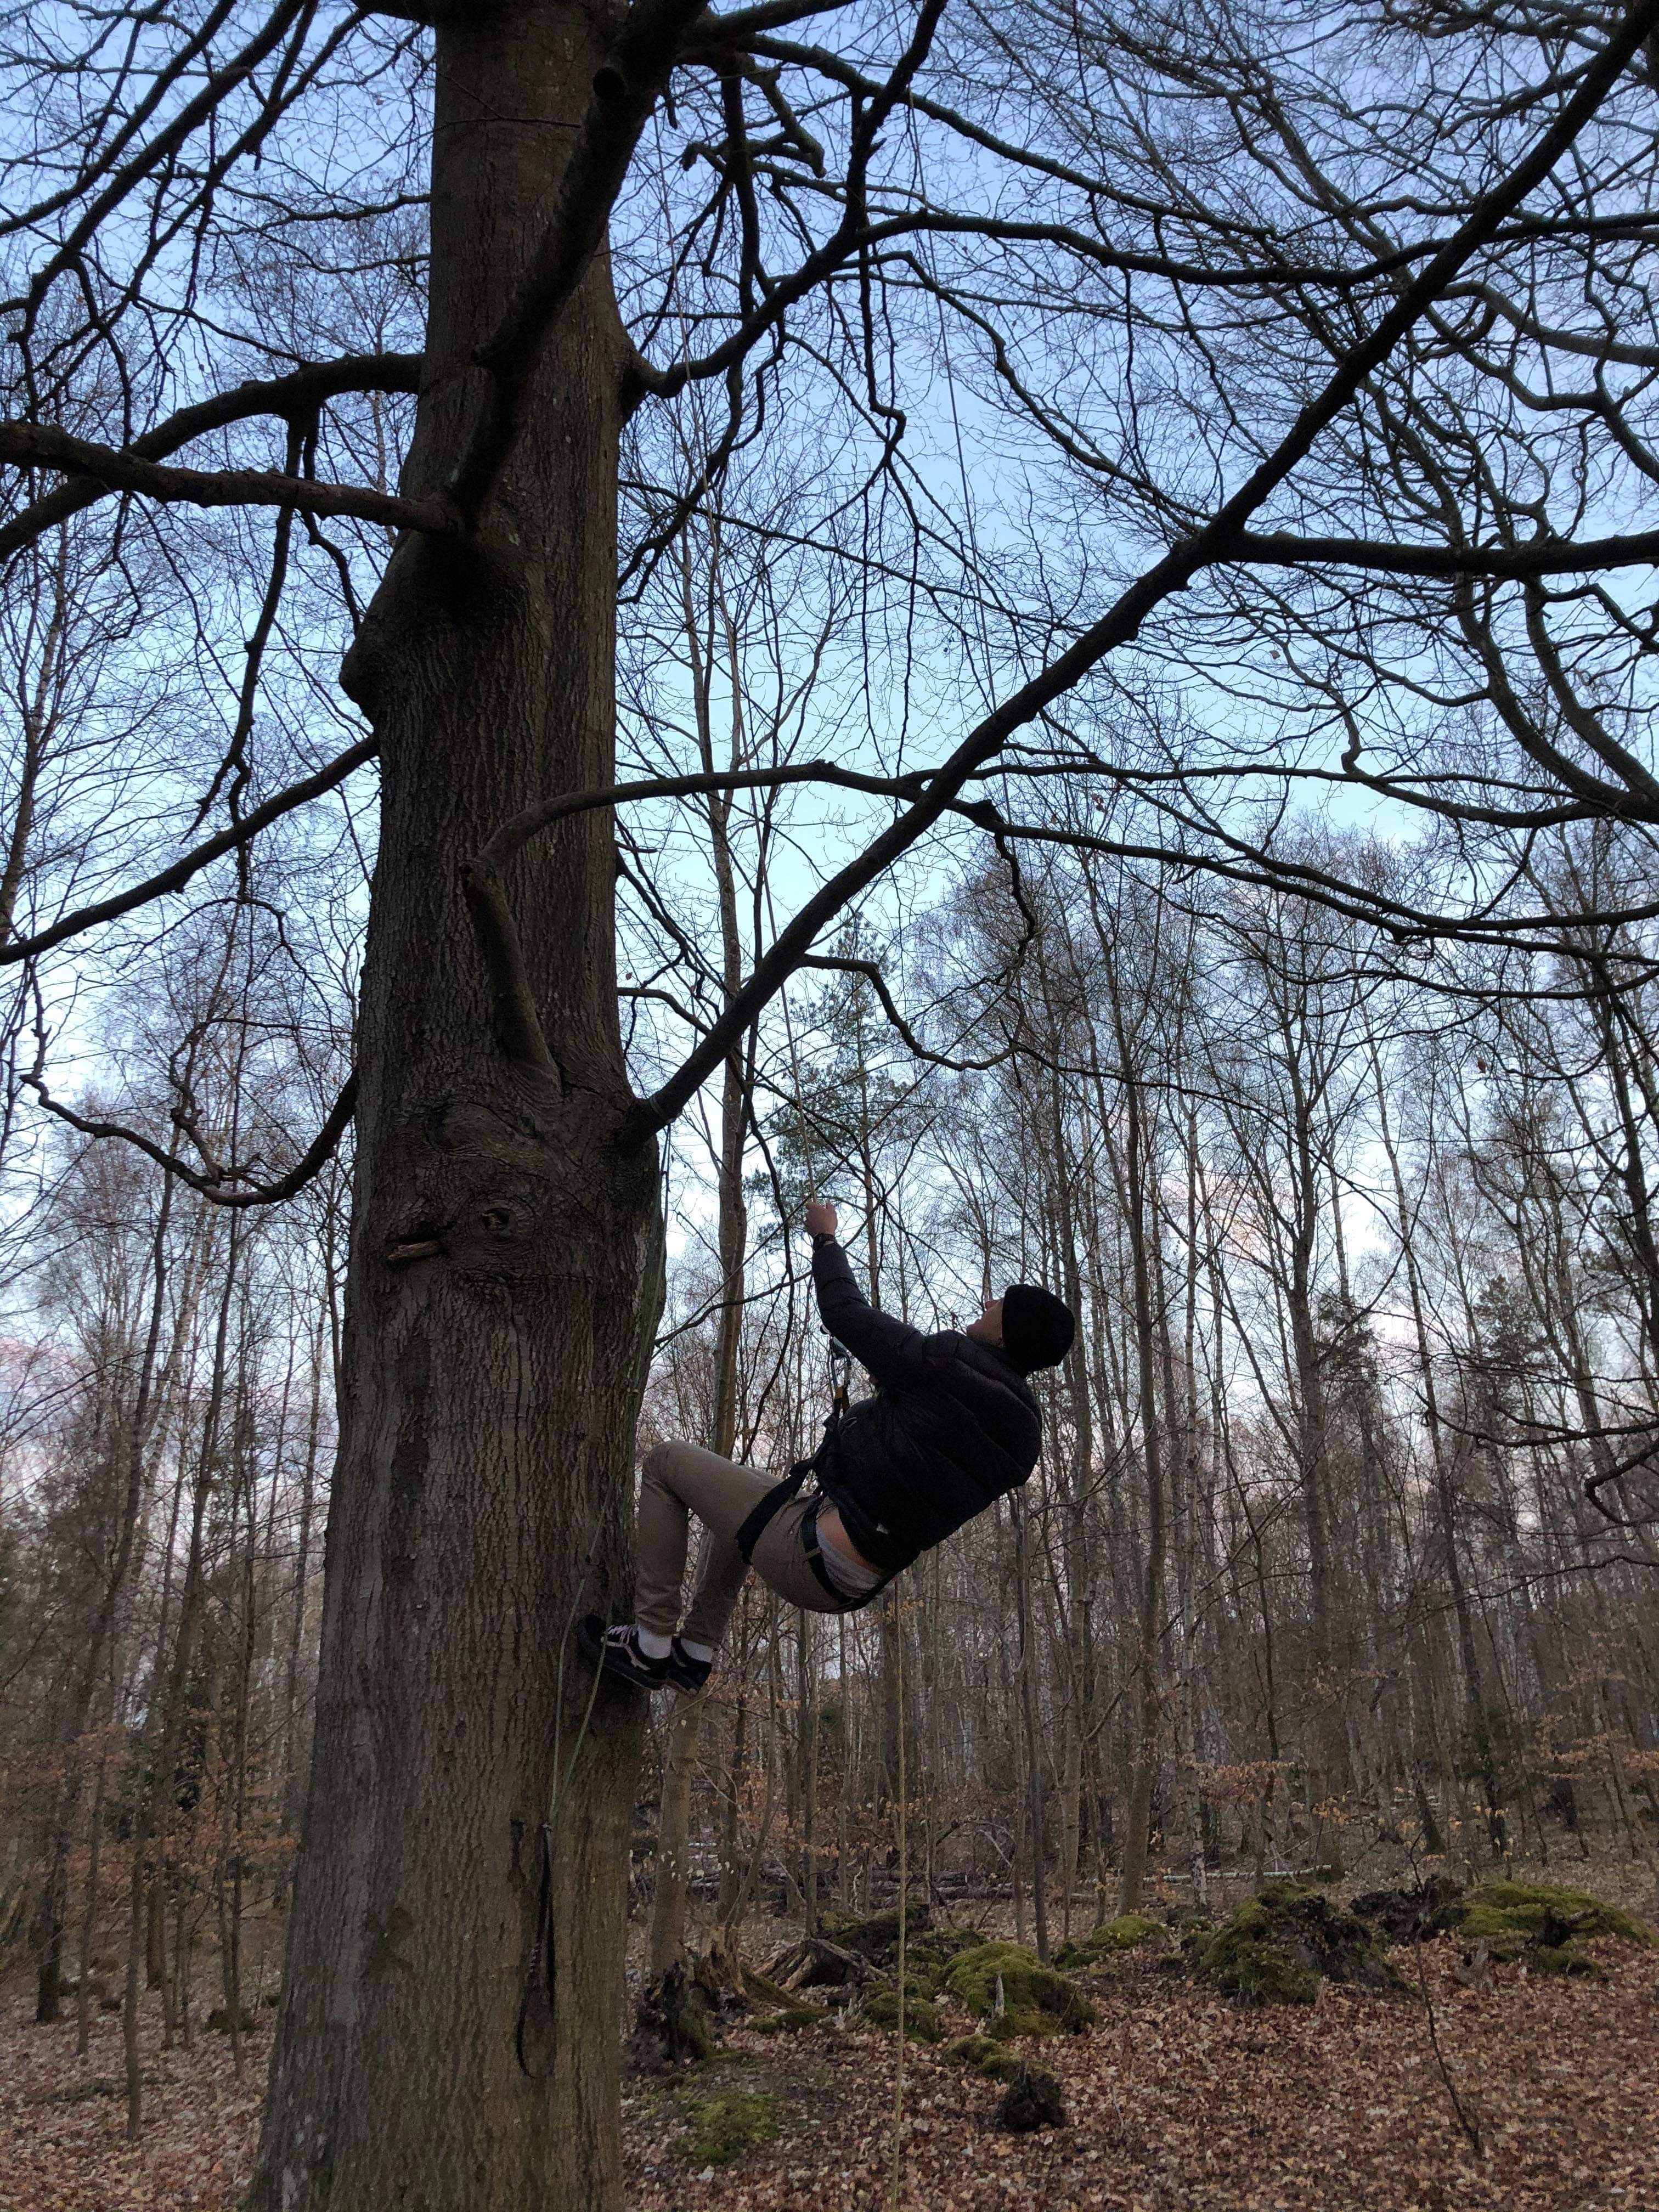 Wait, lets go up in a tree. Here is niels - he knows